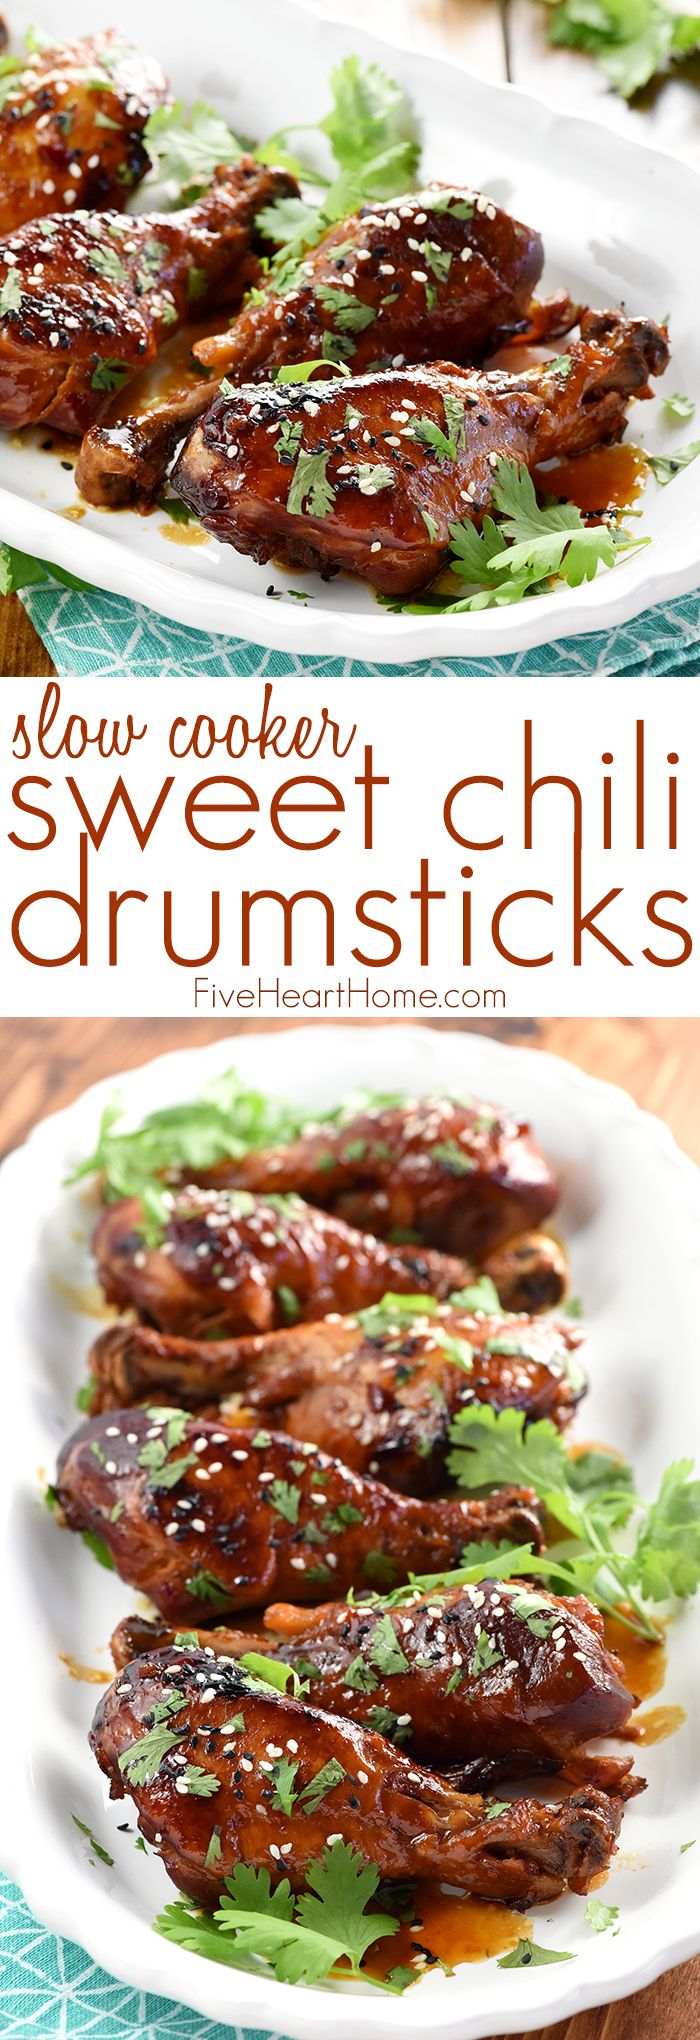 Baked Chicken Recipes Drumsticks Simple